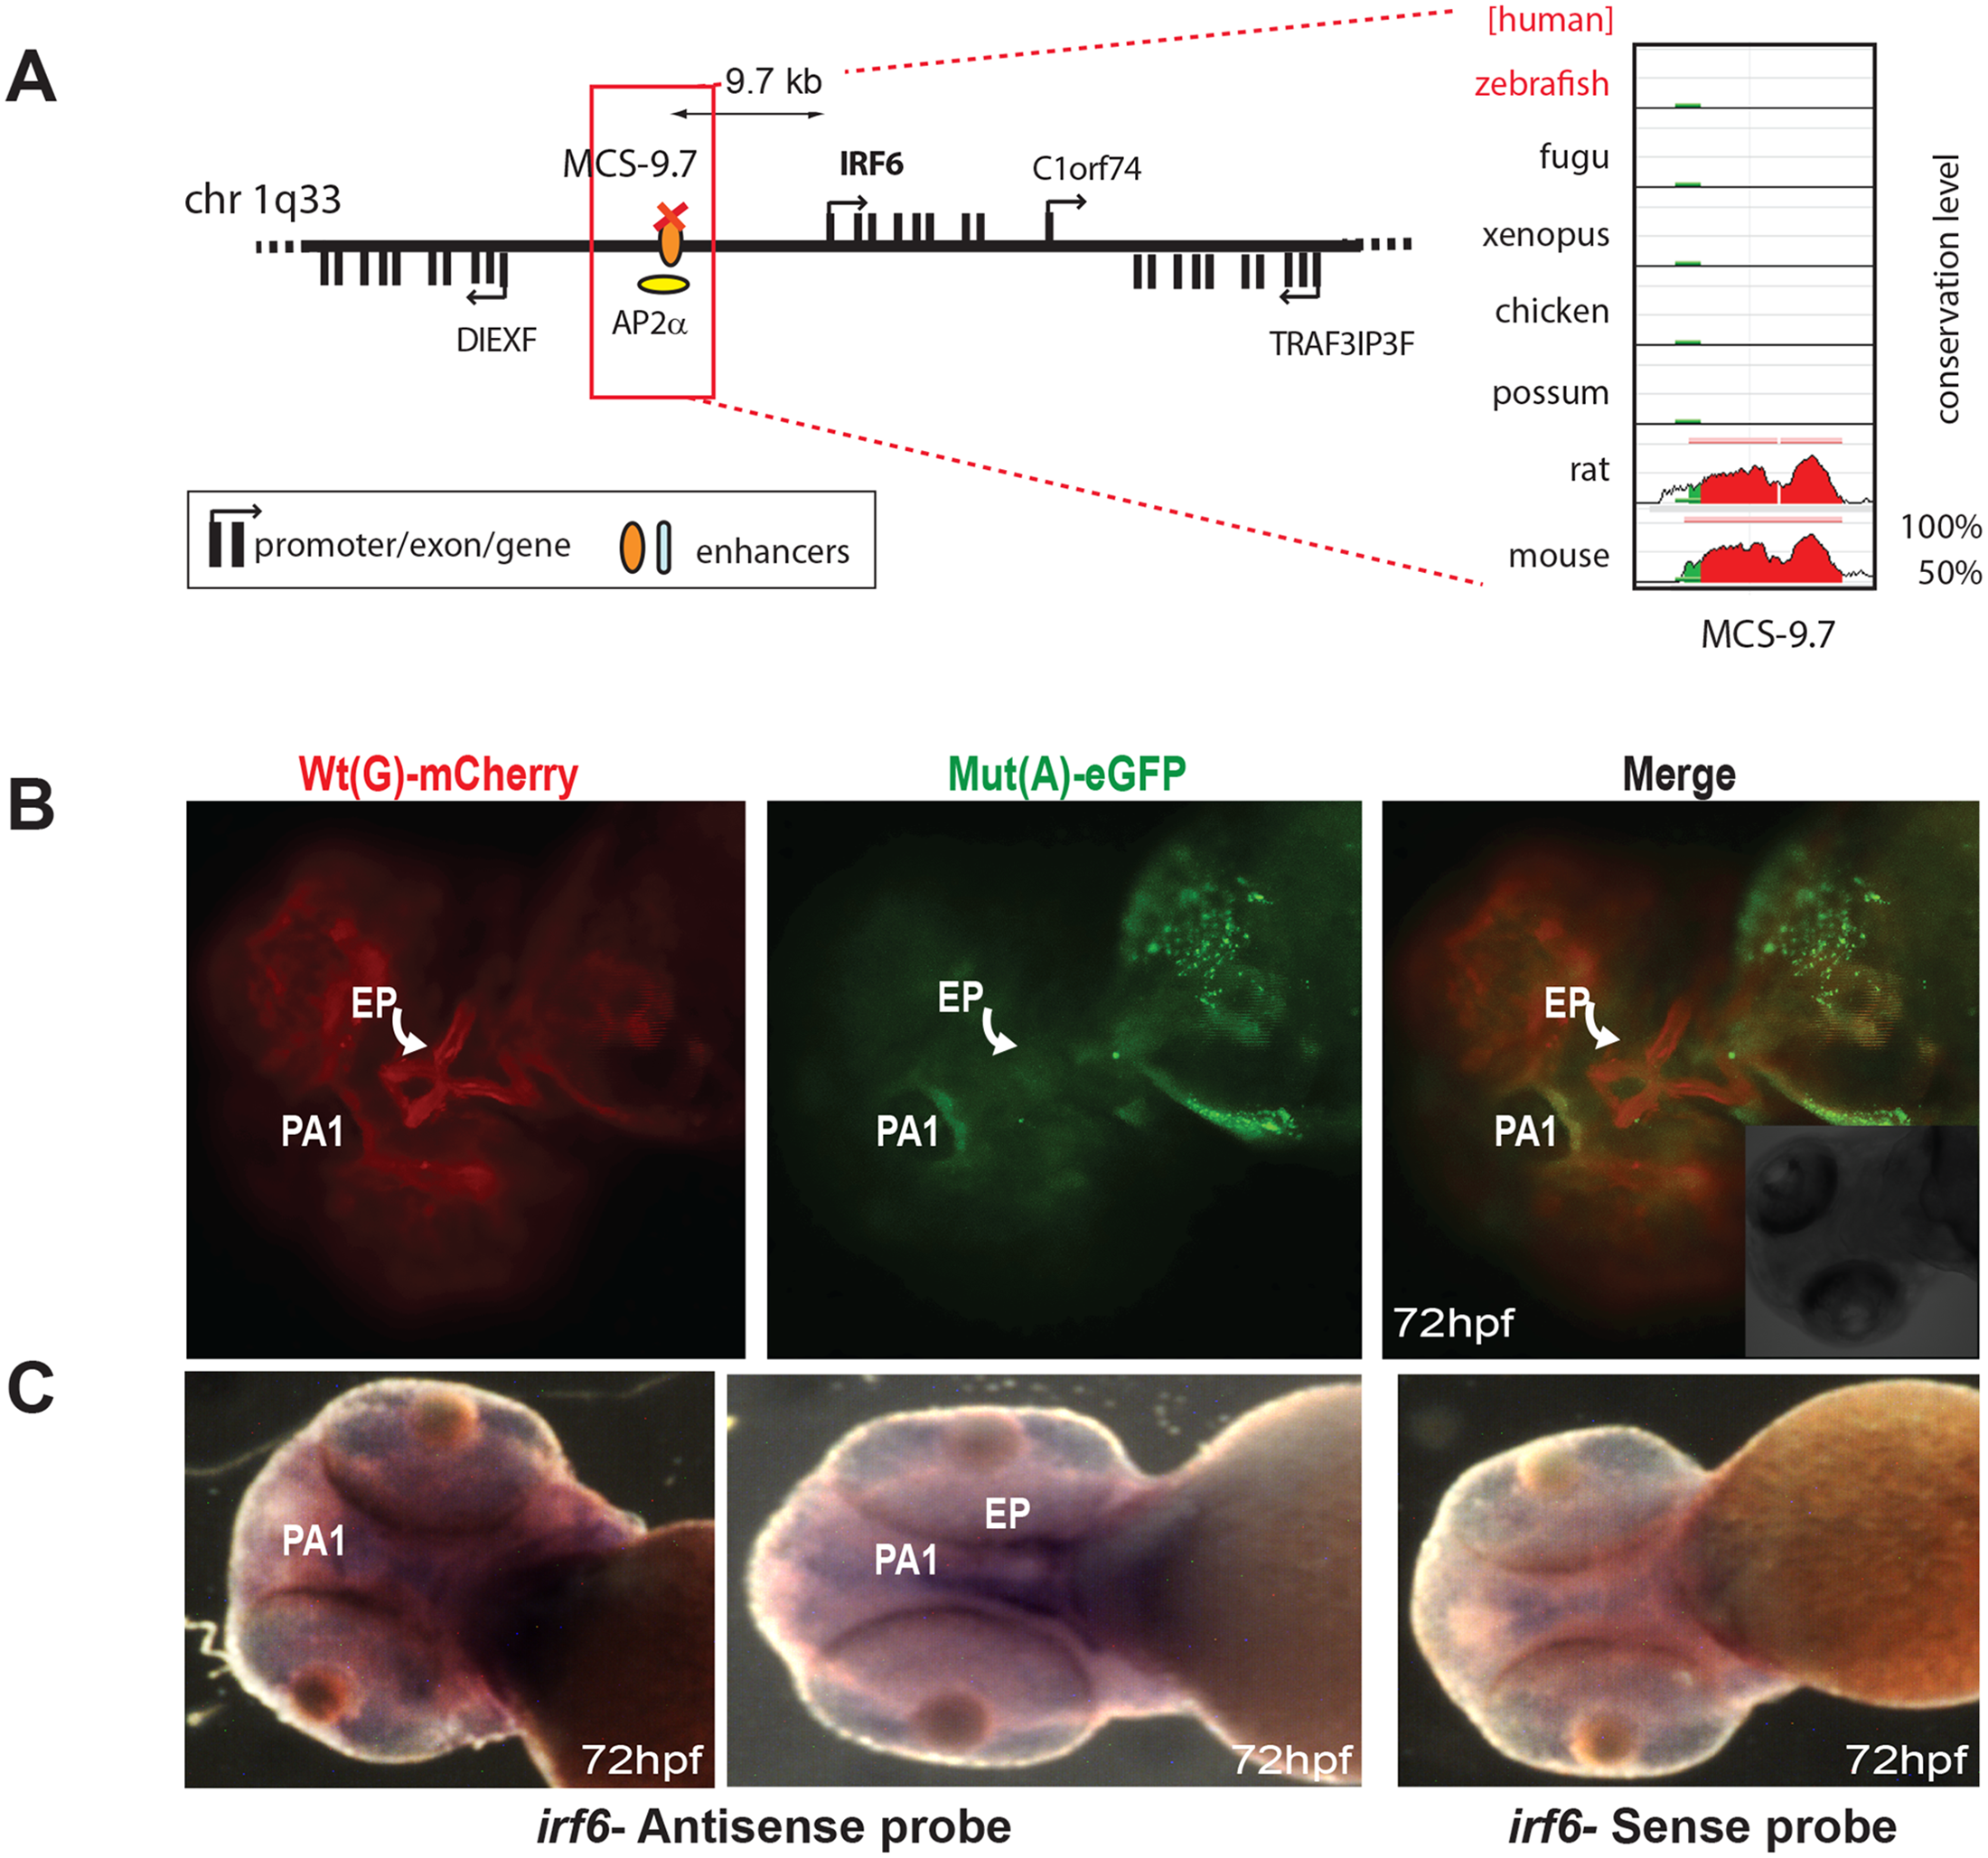 Dual-fluorescence transgenic analysis of IRF6 enhancer MCS-9.7 where a SNP (rs642961, G>A) in a TFAP2A (AP2α) binding site has been associated with cleft lip.